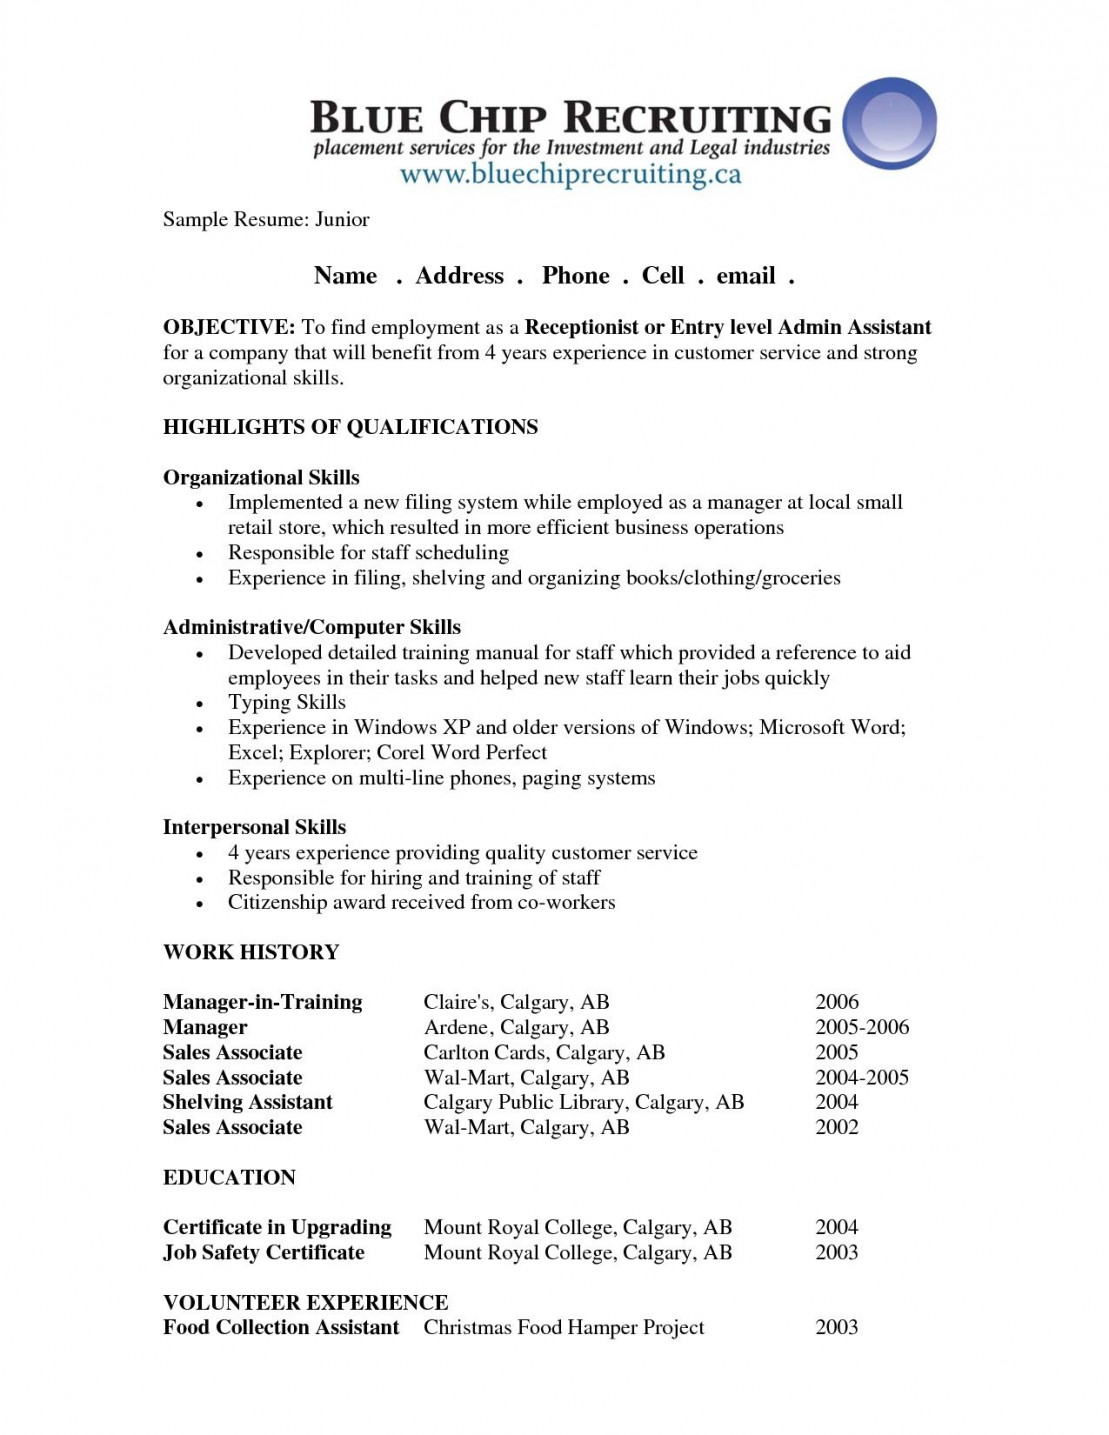 perfect resume objectives template builder example general objective samples pin by job Resume General Resume Objective Samples